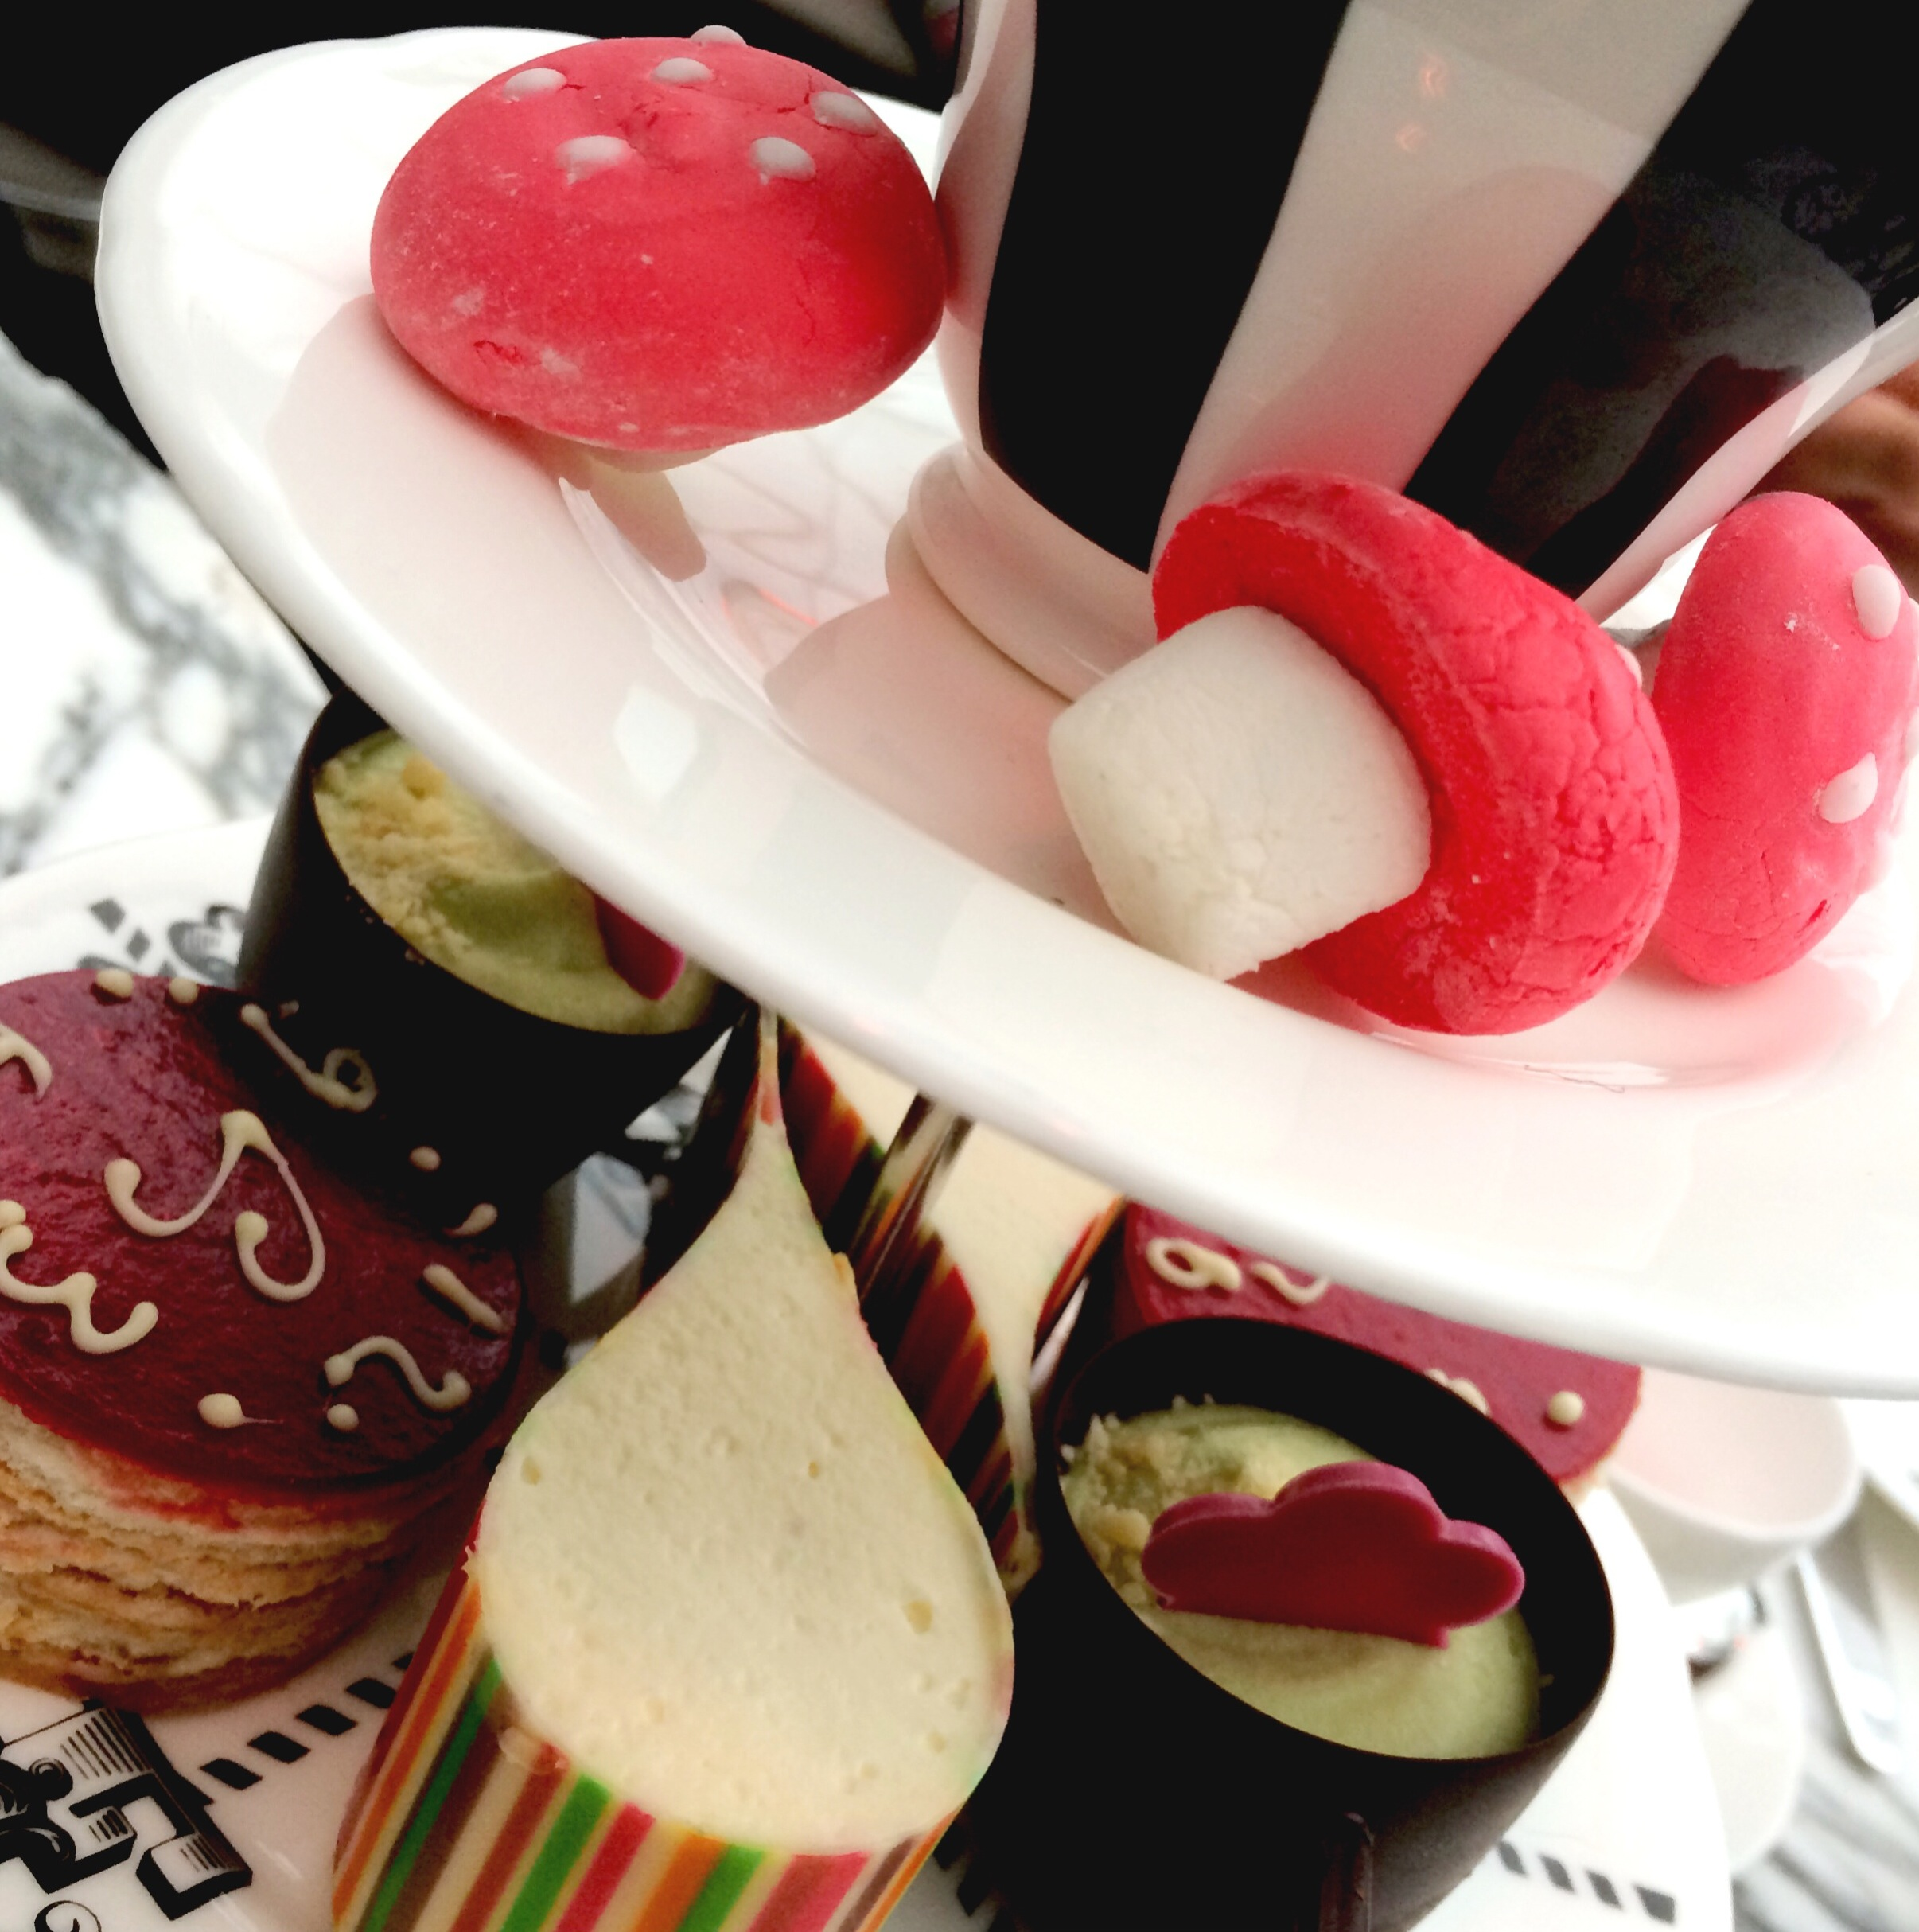 Tea and cakes at The Sanderson in London - afternoon tea with a twist! Find out more at www.ababyonboard.com